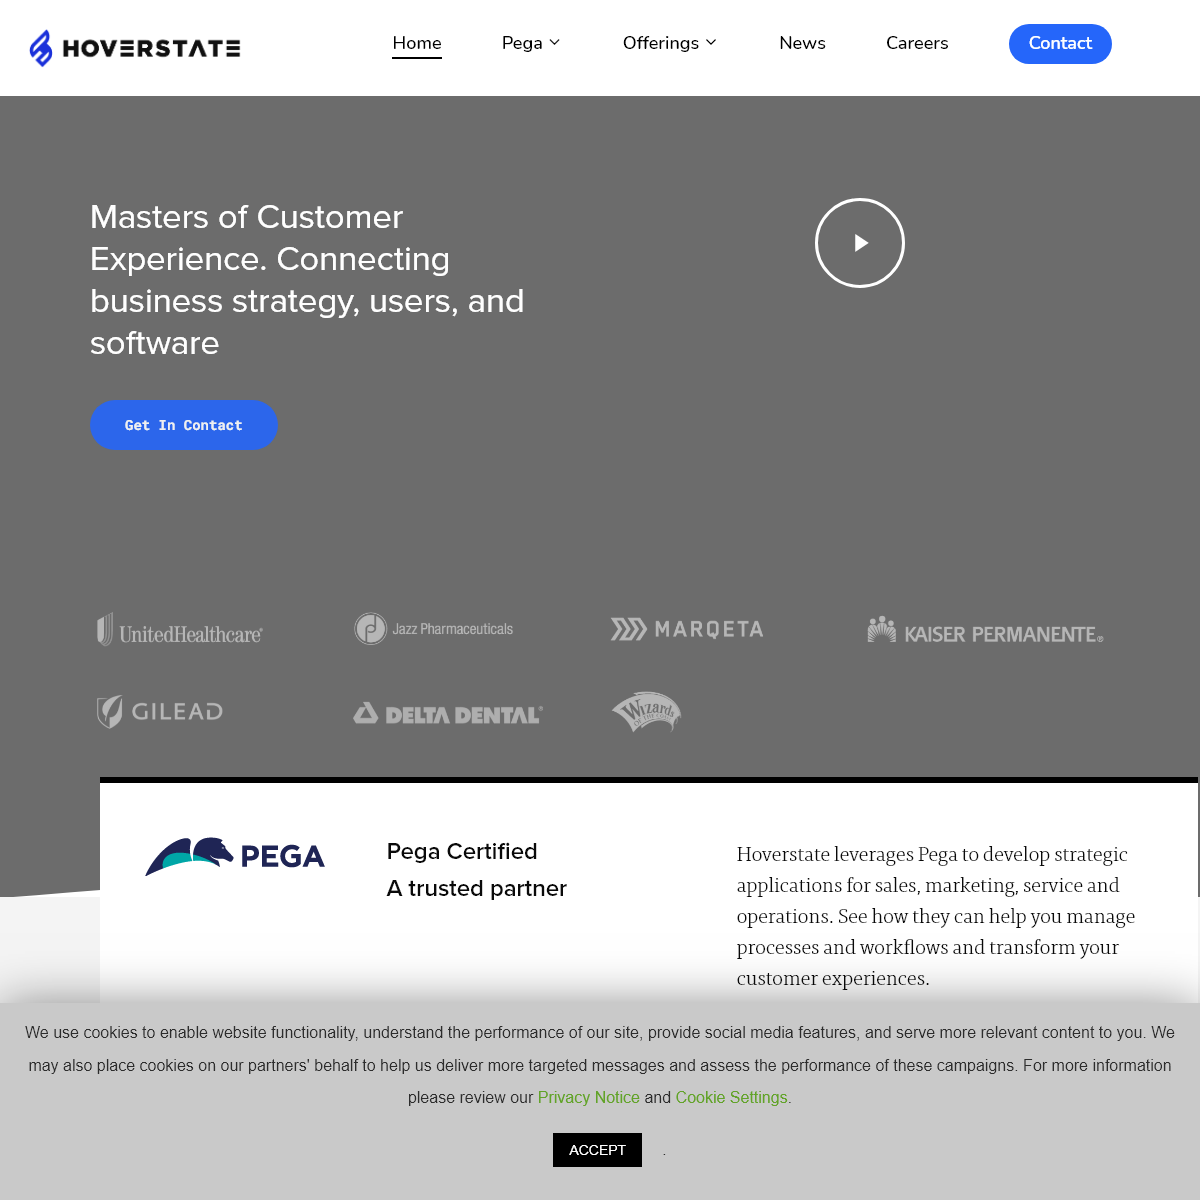 Hoverstate – Technology, Experience Design, Innovation, Healthcare, Pega